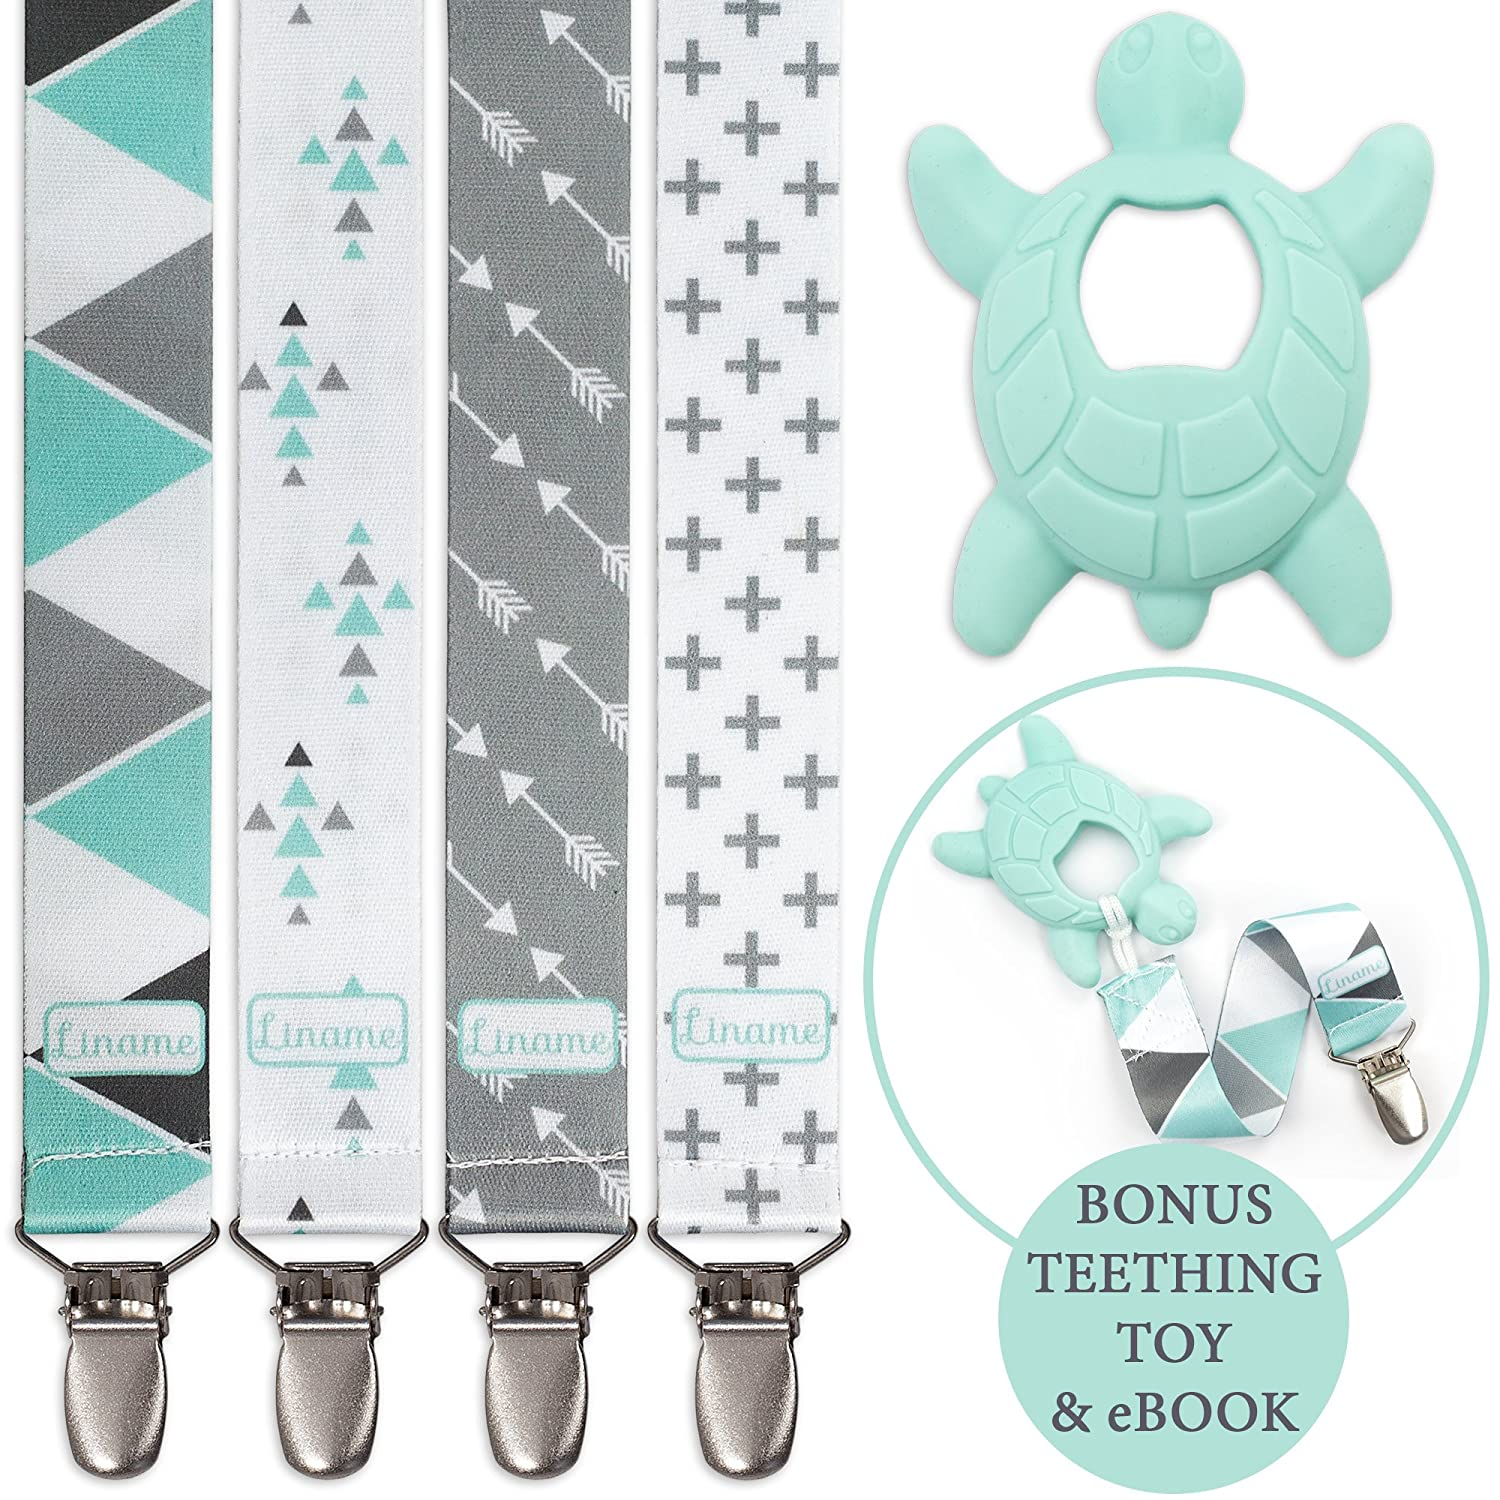 Liname Pacifier Clip for Boys with BONUS Teething Toy & eBook - 4 Pack Gift Packaging - Premium Quality & Unique Design - Pacifier Clips Fit ALL Pacifiers & Soothers - Perfect Baby Gift green4